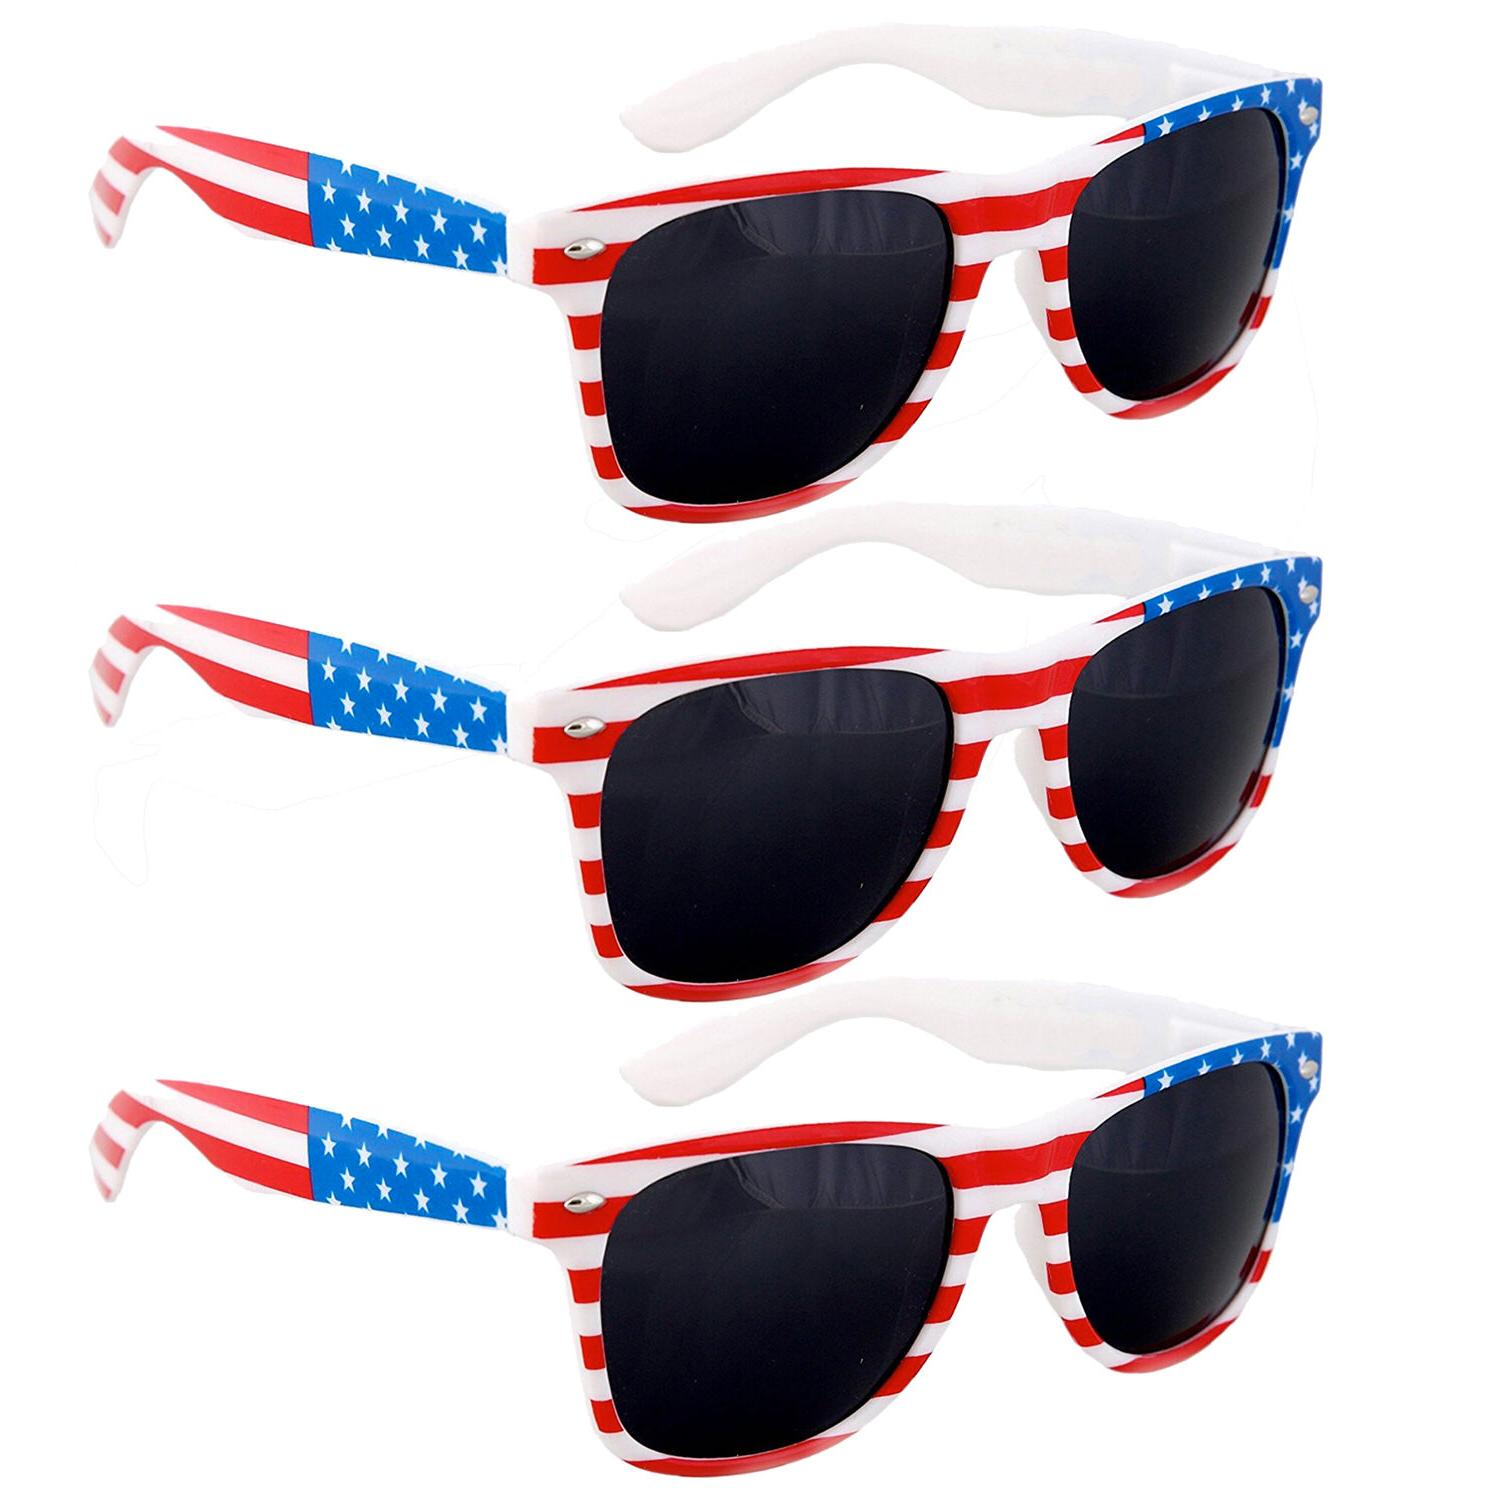 3 Pair USA American Flag Red White Blue Frame Black lens sun